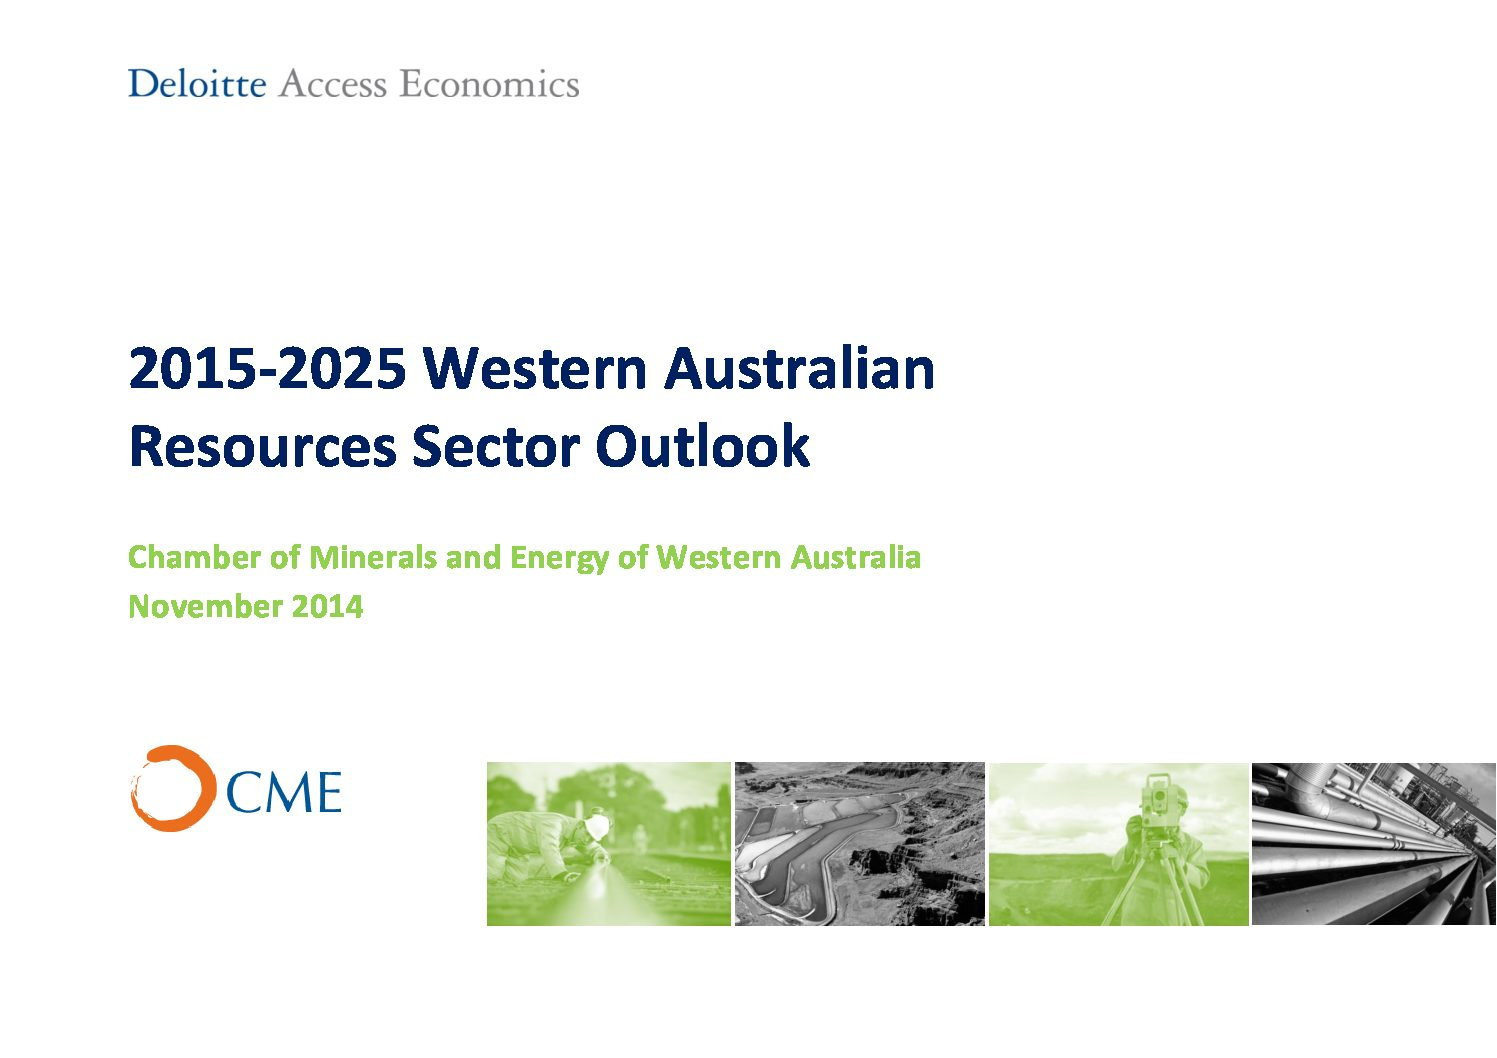 2015-2025 Western Australia Resources Sector Outlook